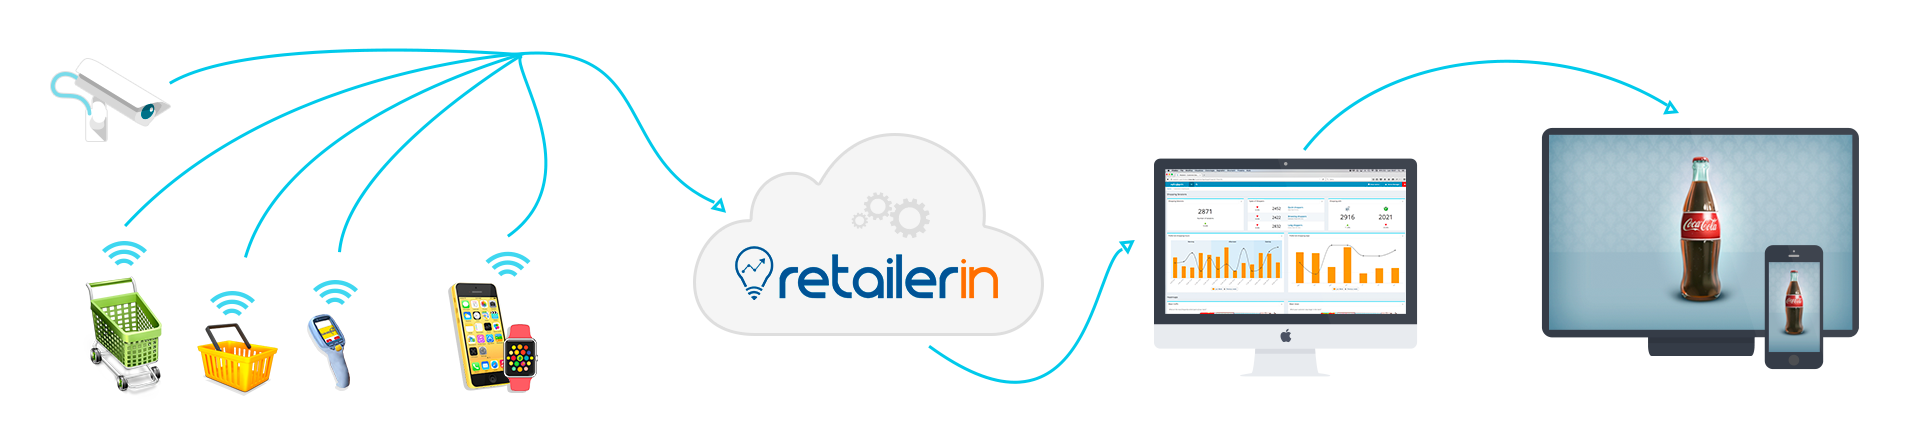 How RetailerIN - In-store Analytics Works through the use of localisation technologies